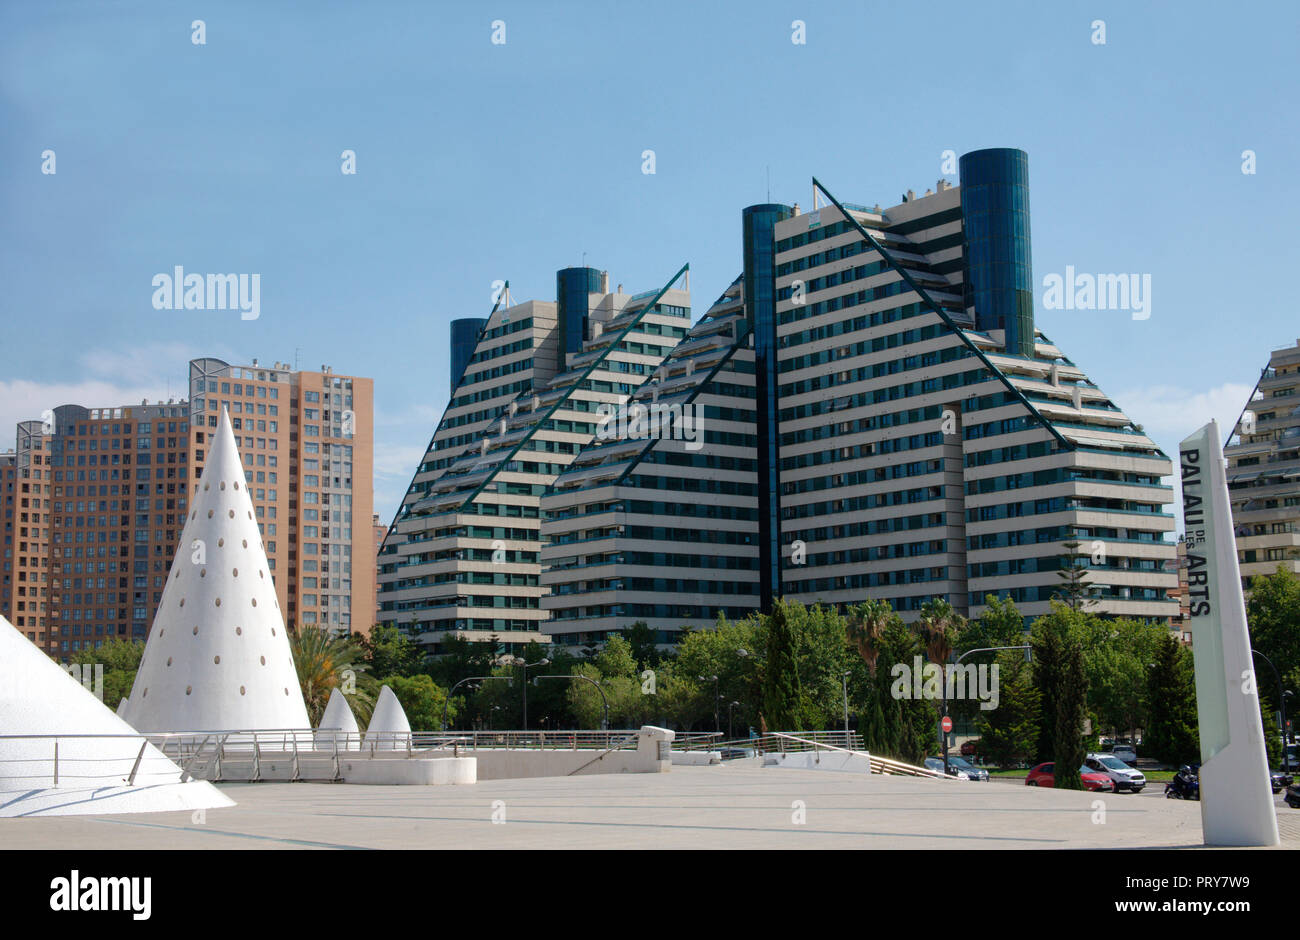 Contemporary multistory buildings near the City of Arts and Science in Valencia - Stock Image